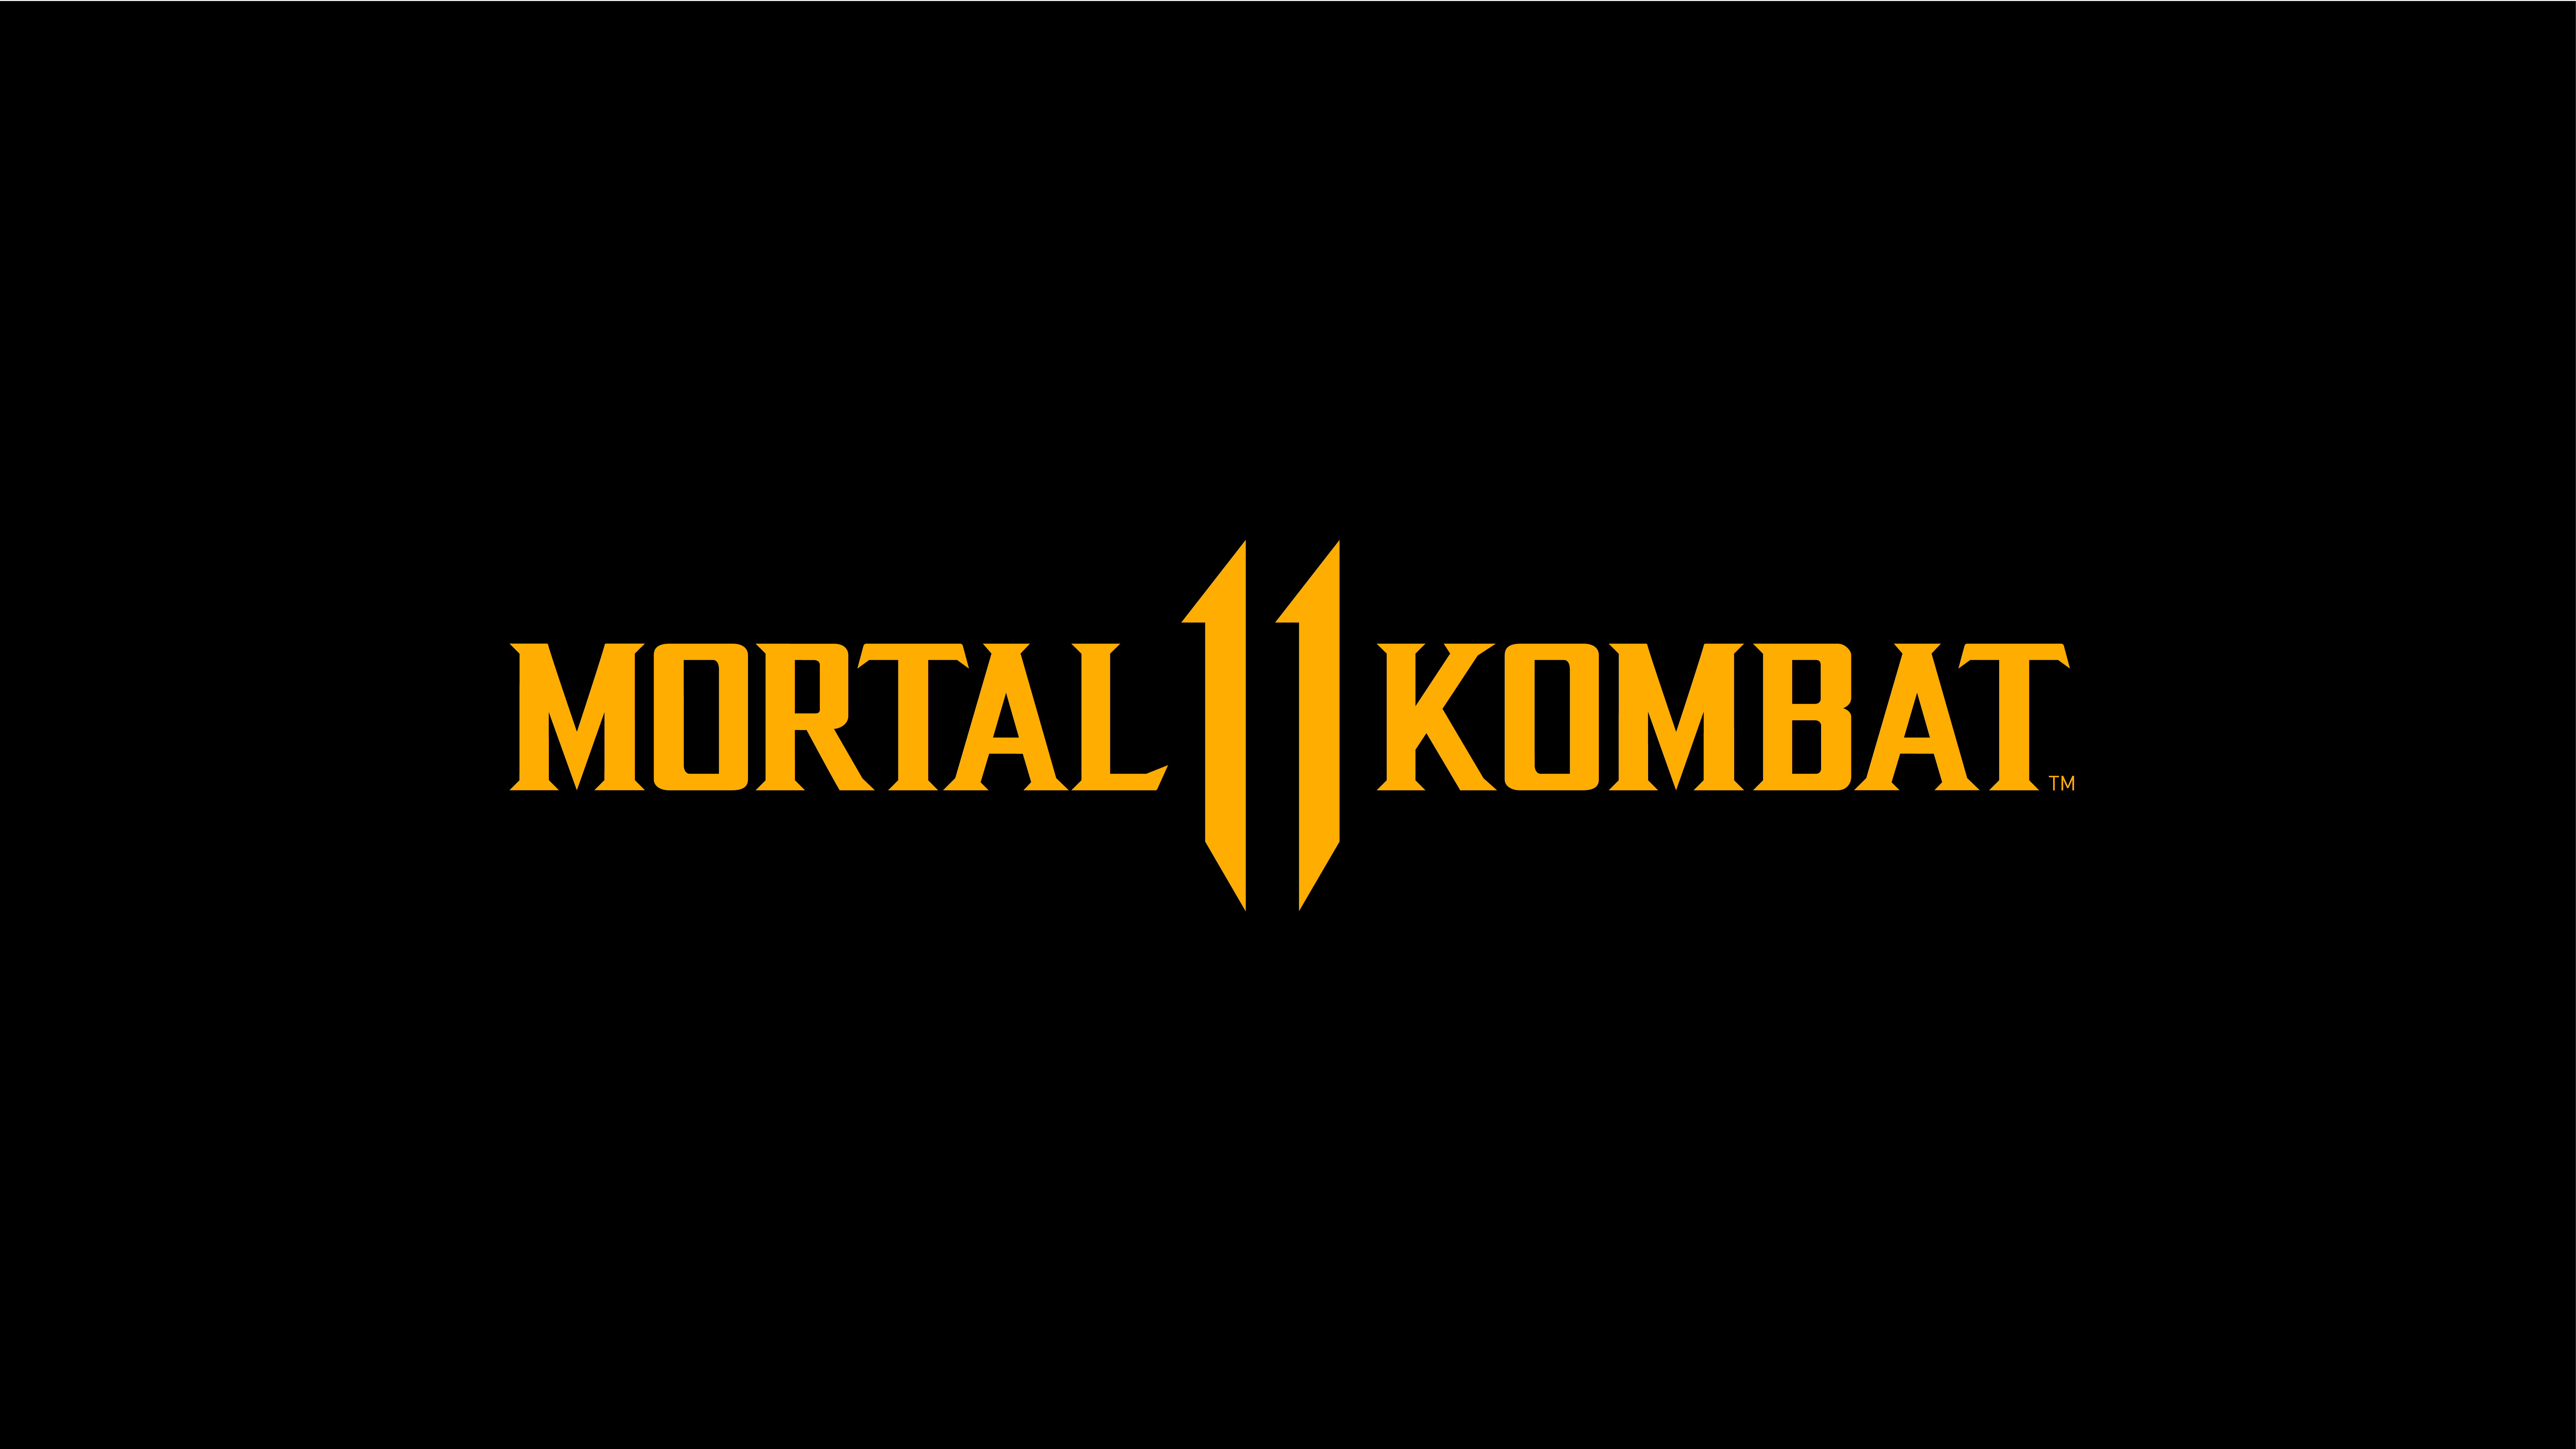 Mortal Kombat 11 Brings The Brutality From The Past To The Present